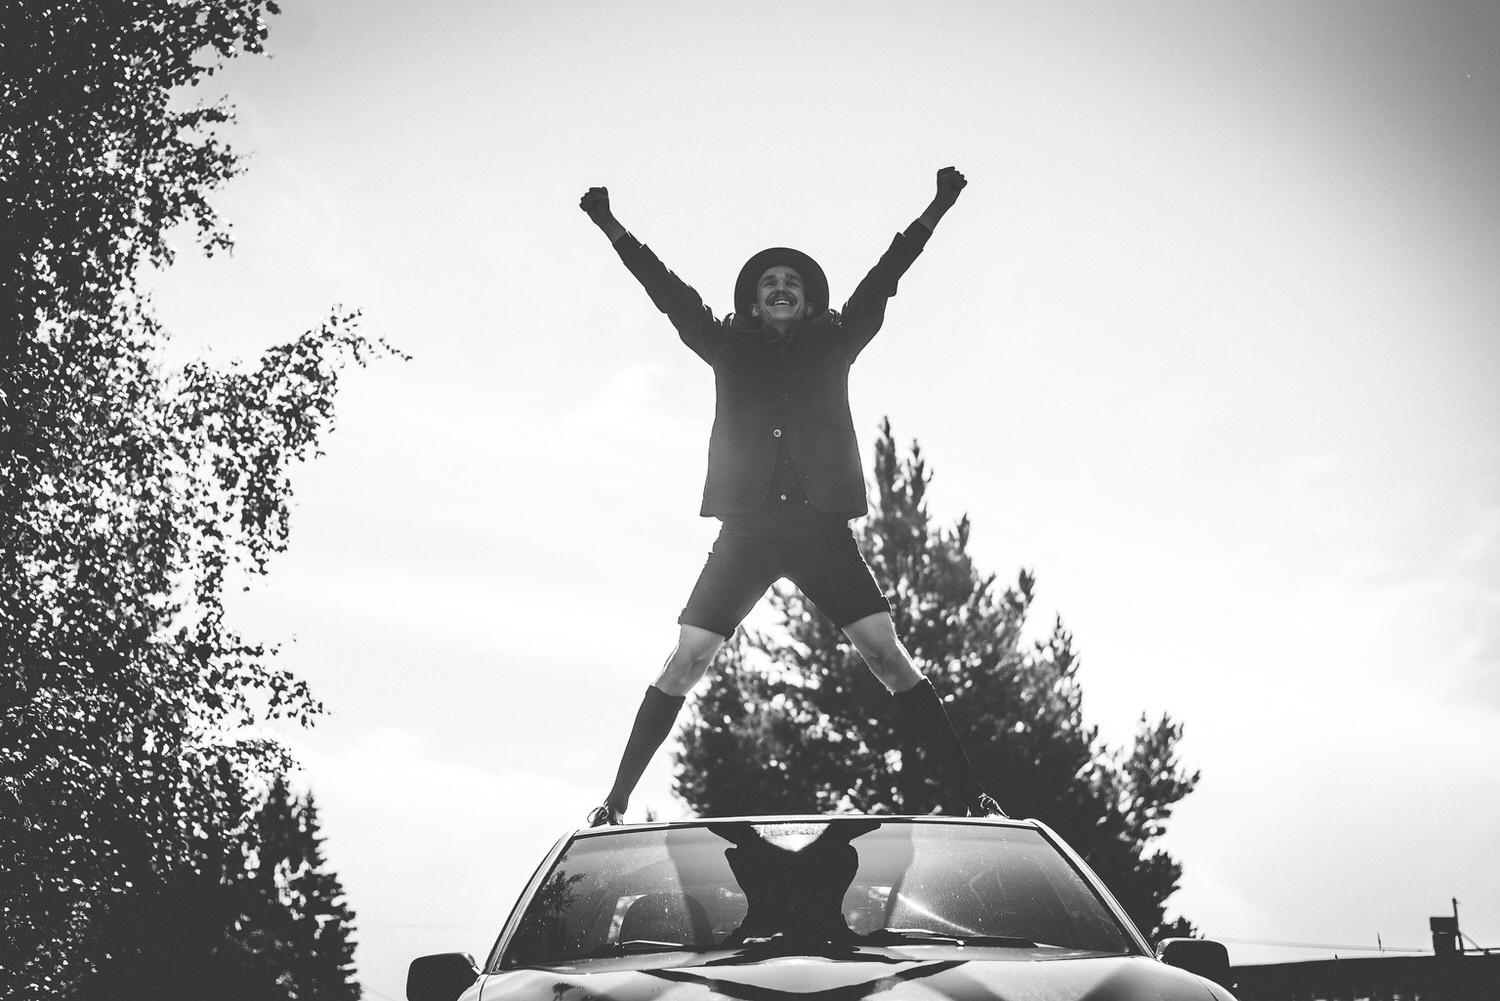 groom on top of the car, x-jump